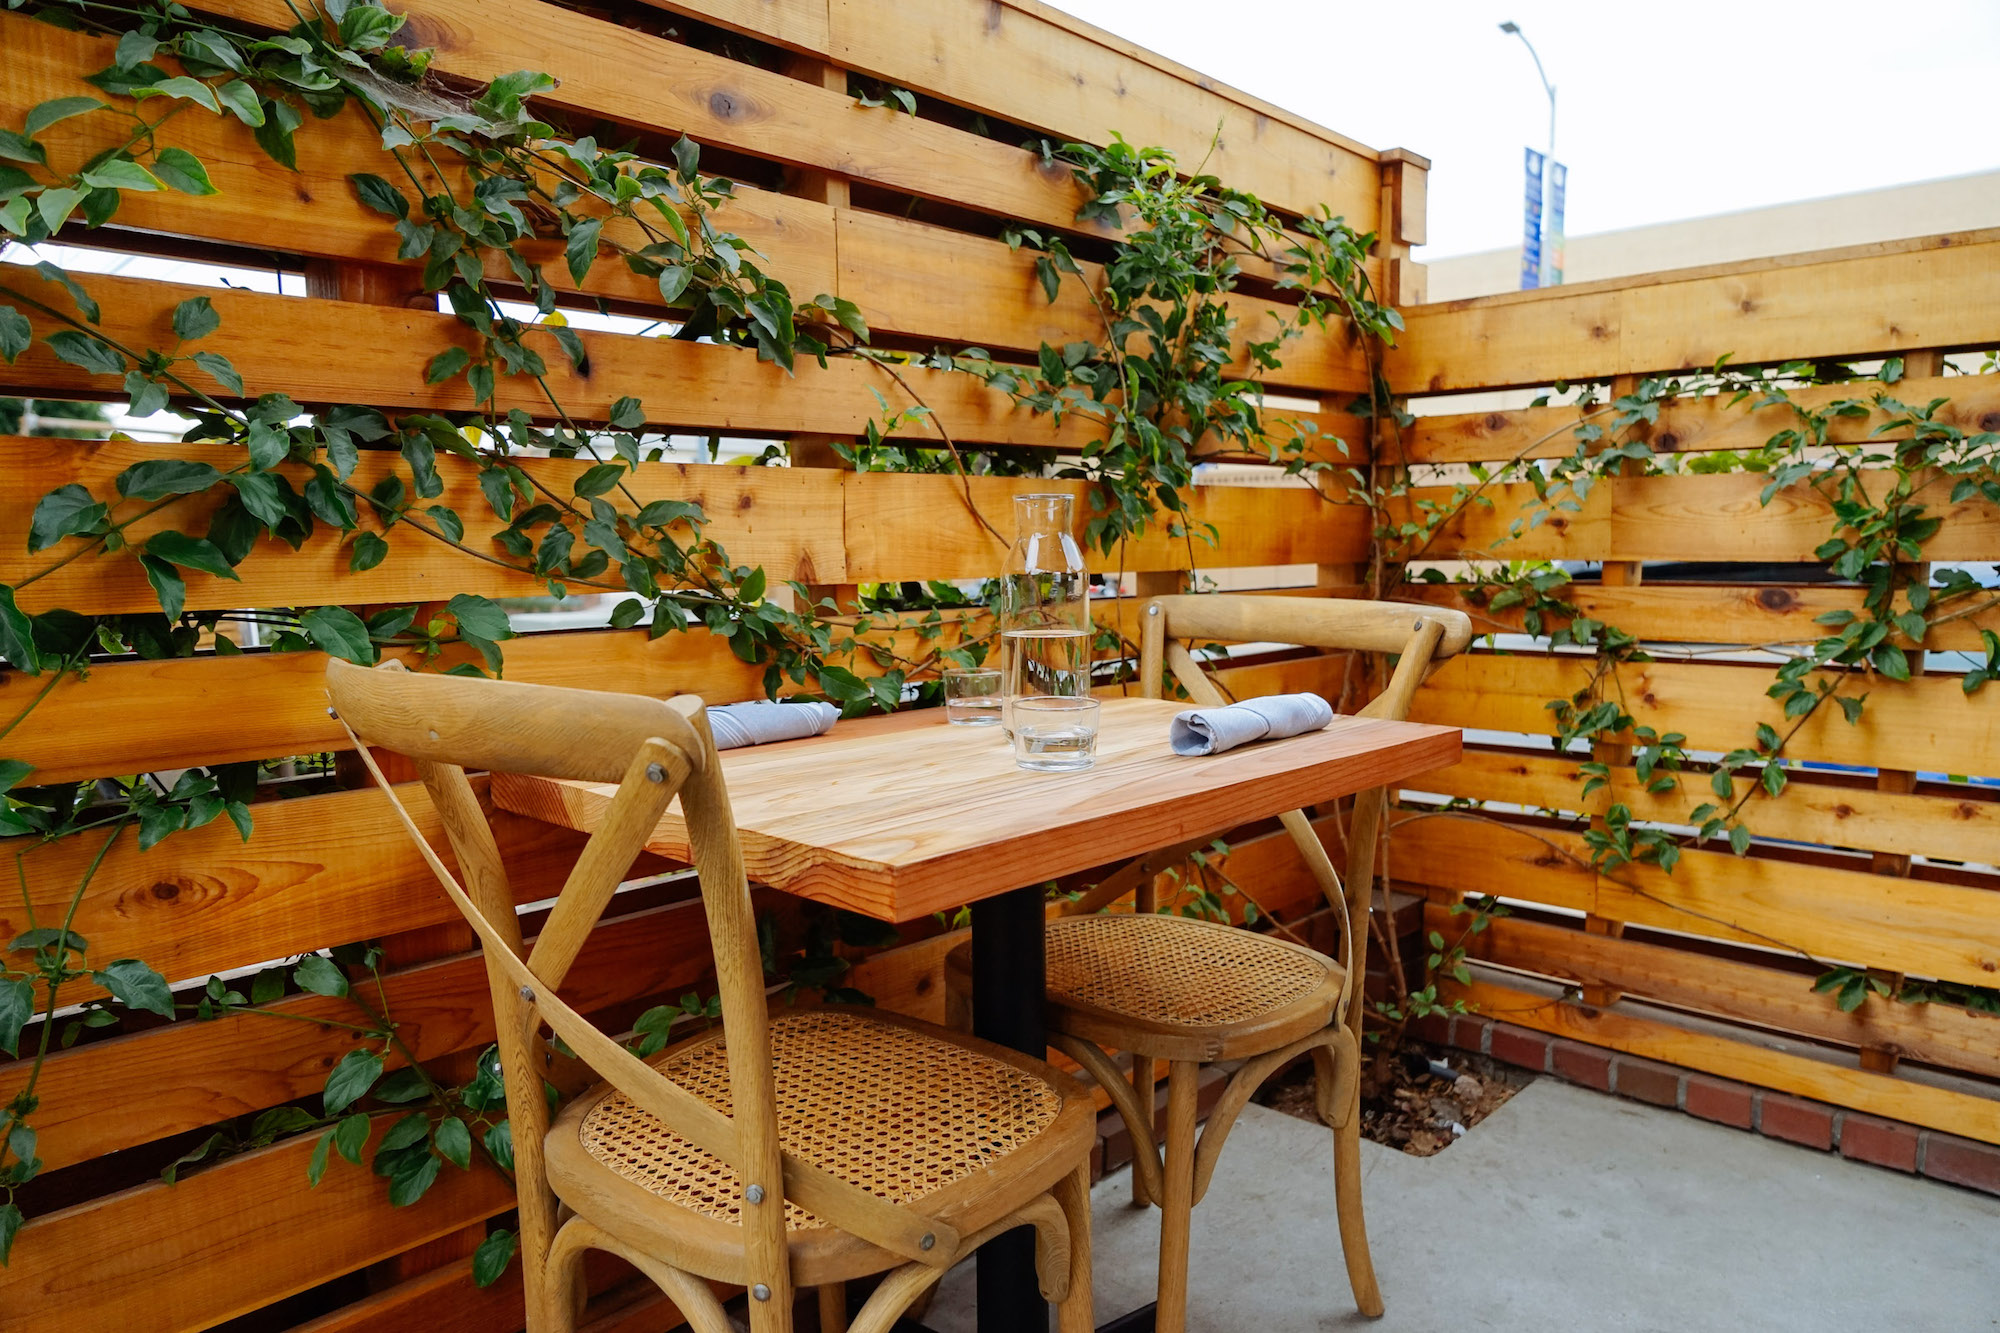 A wooden table and chairs sit on a leafy restaurant patio.